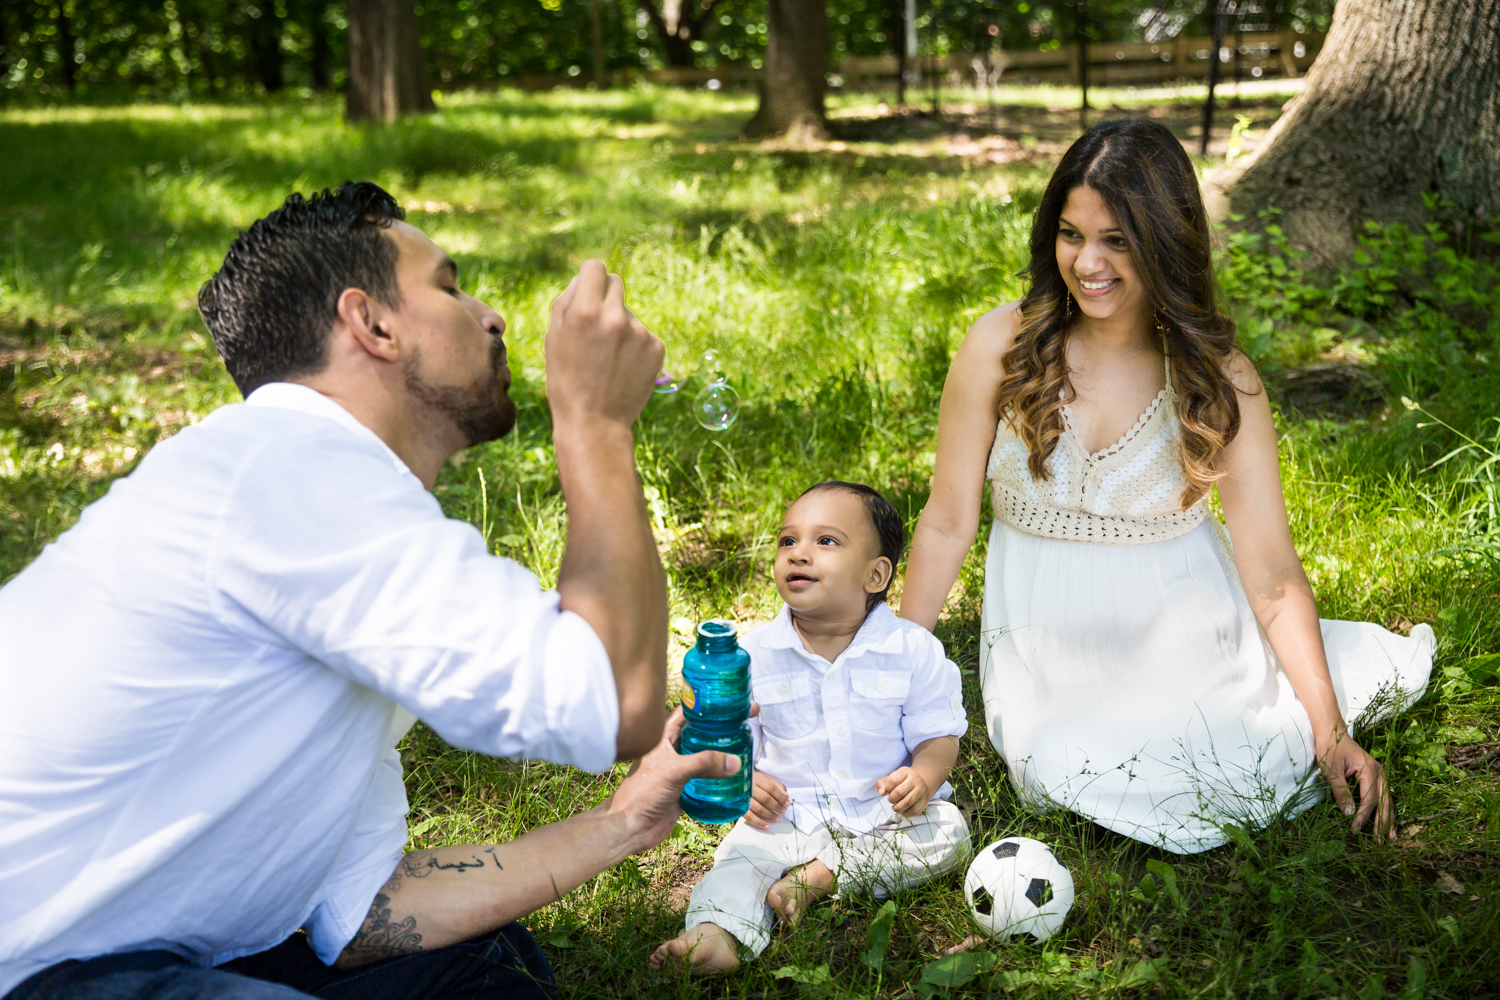 Parents sitting in grass and blowing bubbles with son